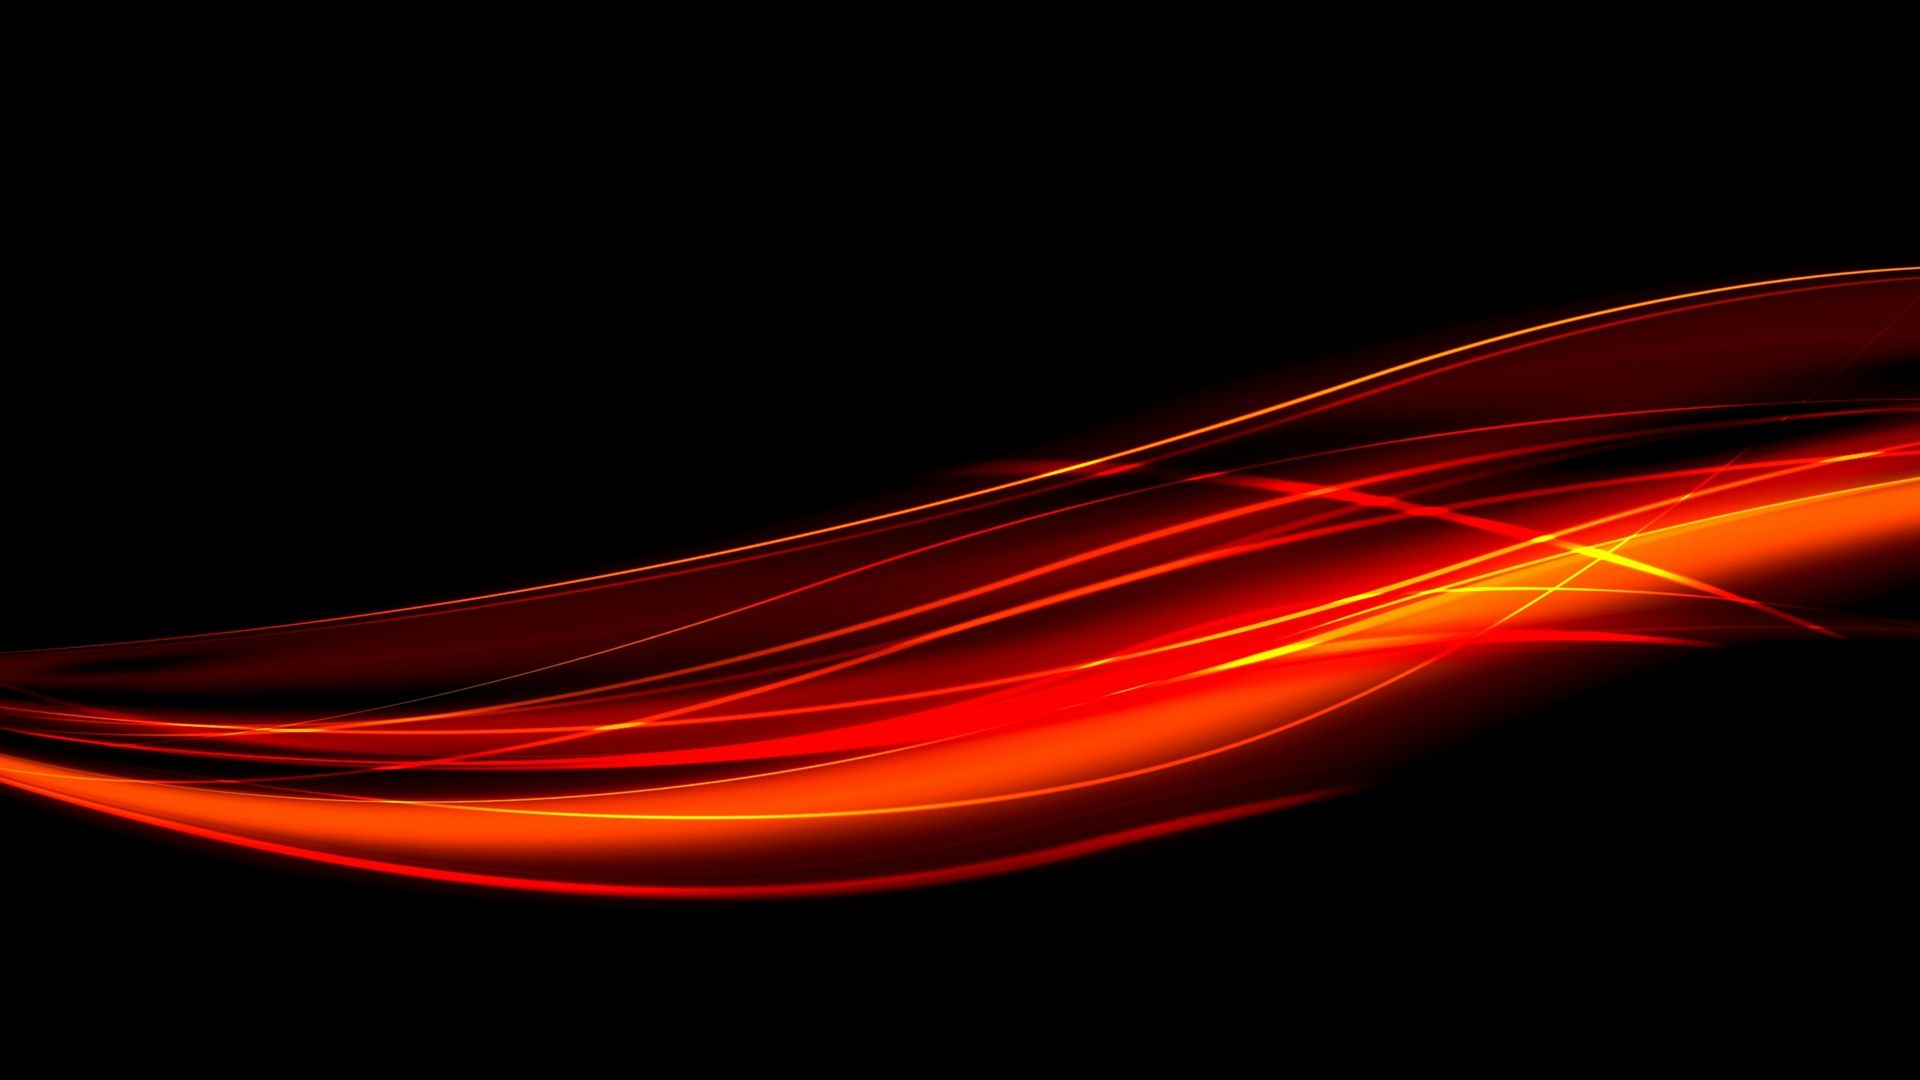 1920x1080 Wallpaper Black Red Line Light In 2020 Red And Black Wallpaper Red Wallpaper Orange Wallpaper